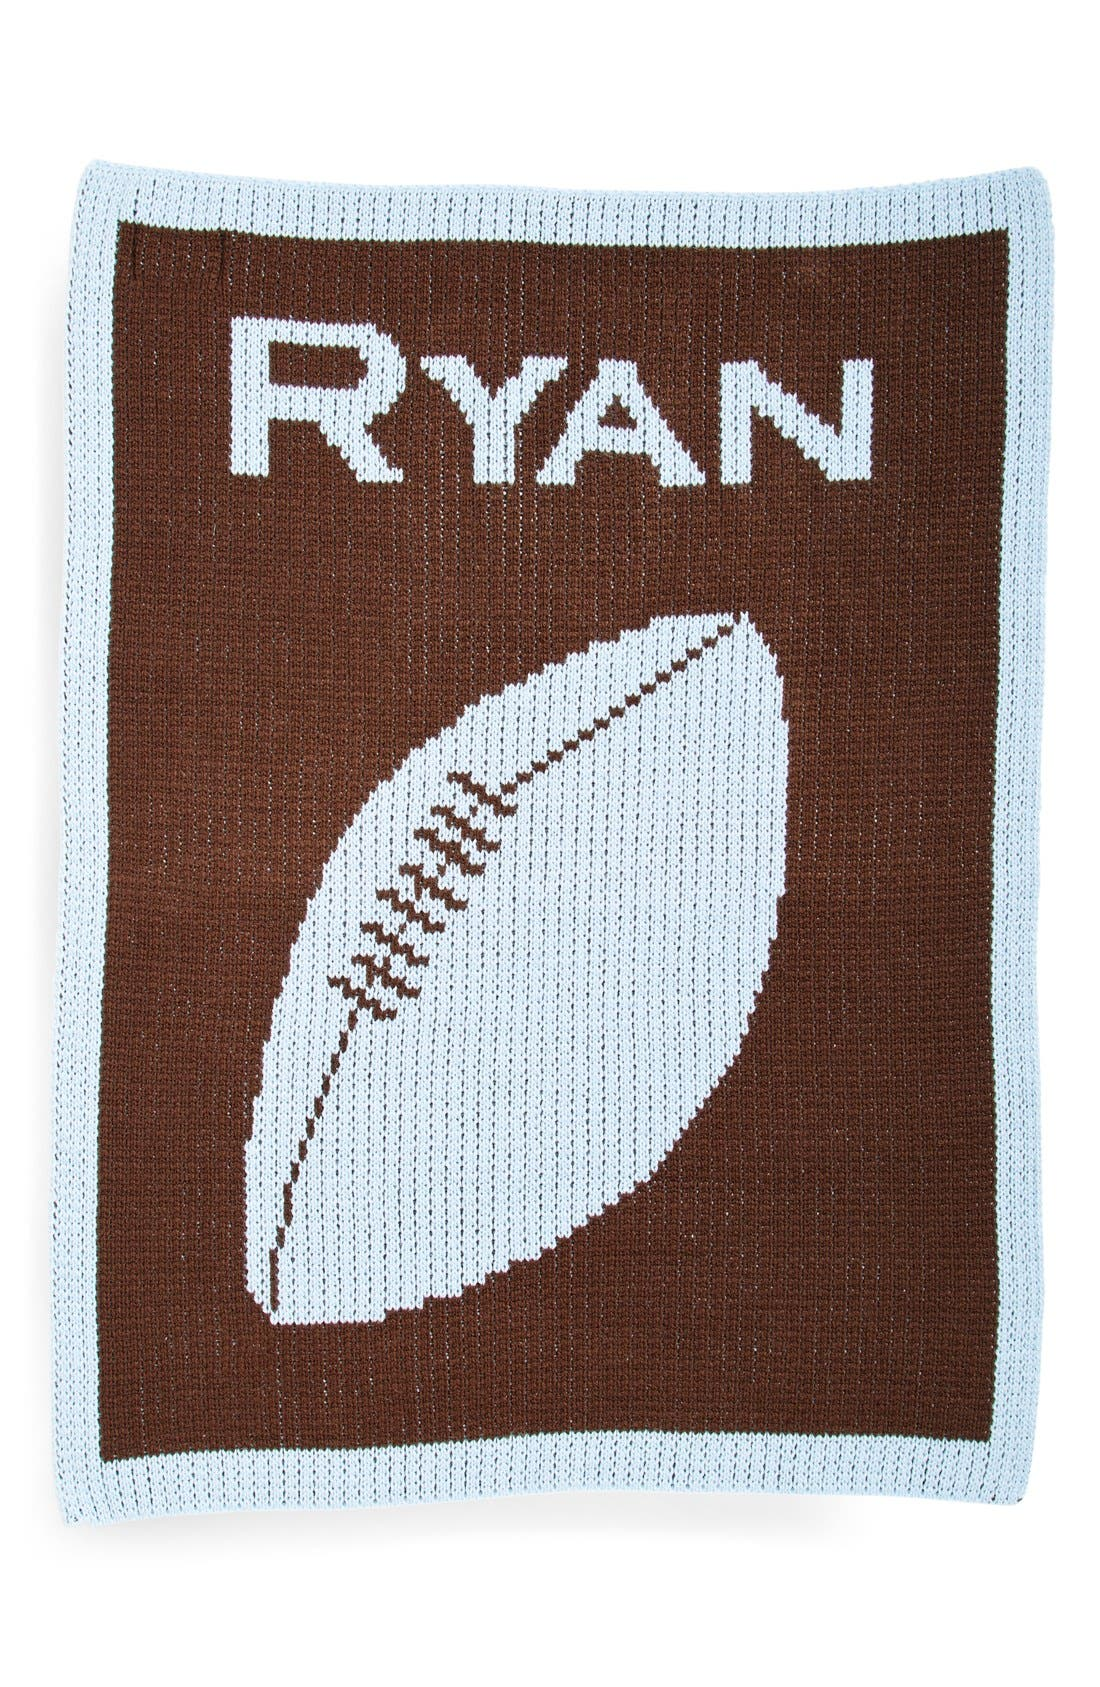 'Football' Personalized Blanket,                         Main,                         color, Choclate/ Pale Blue